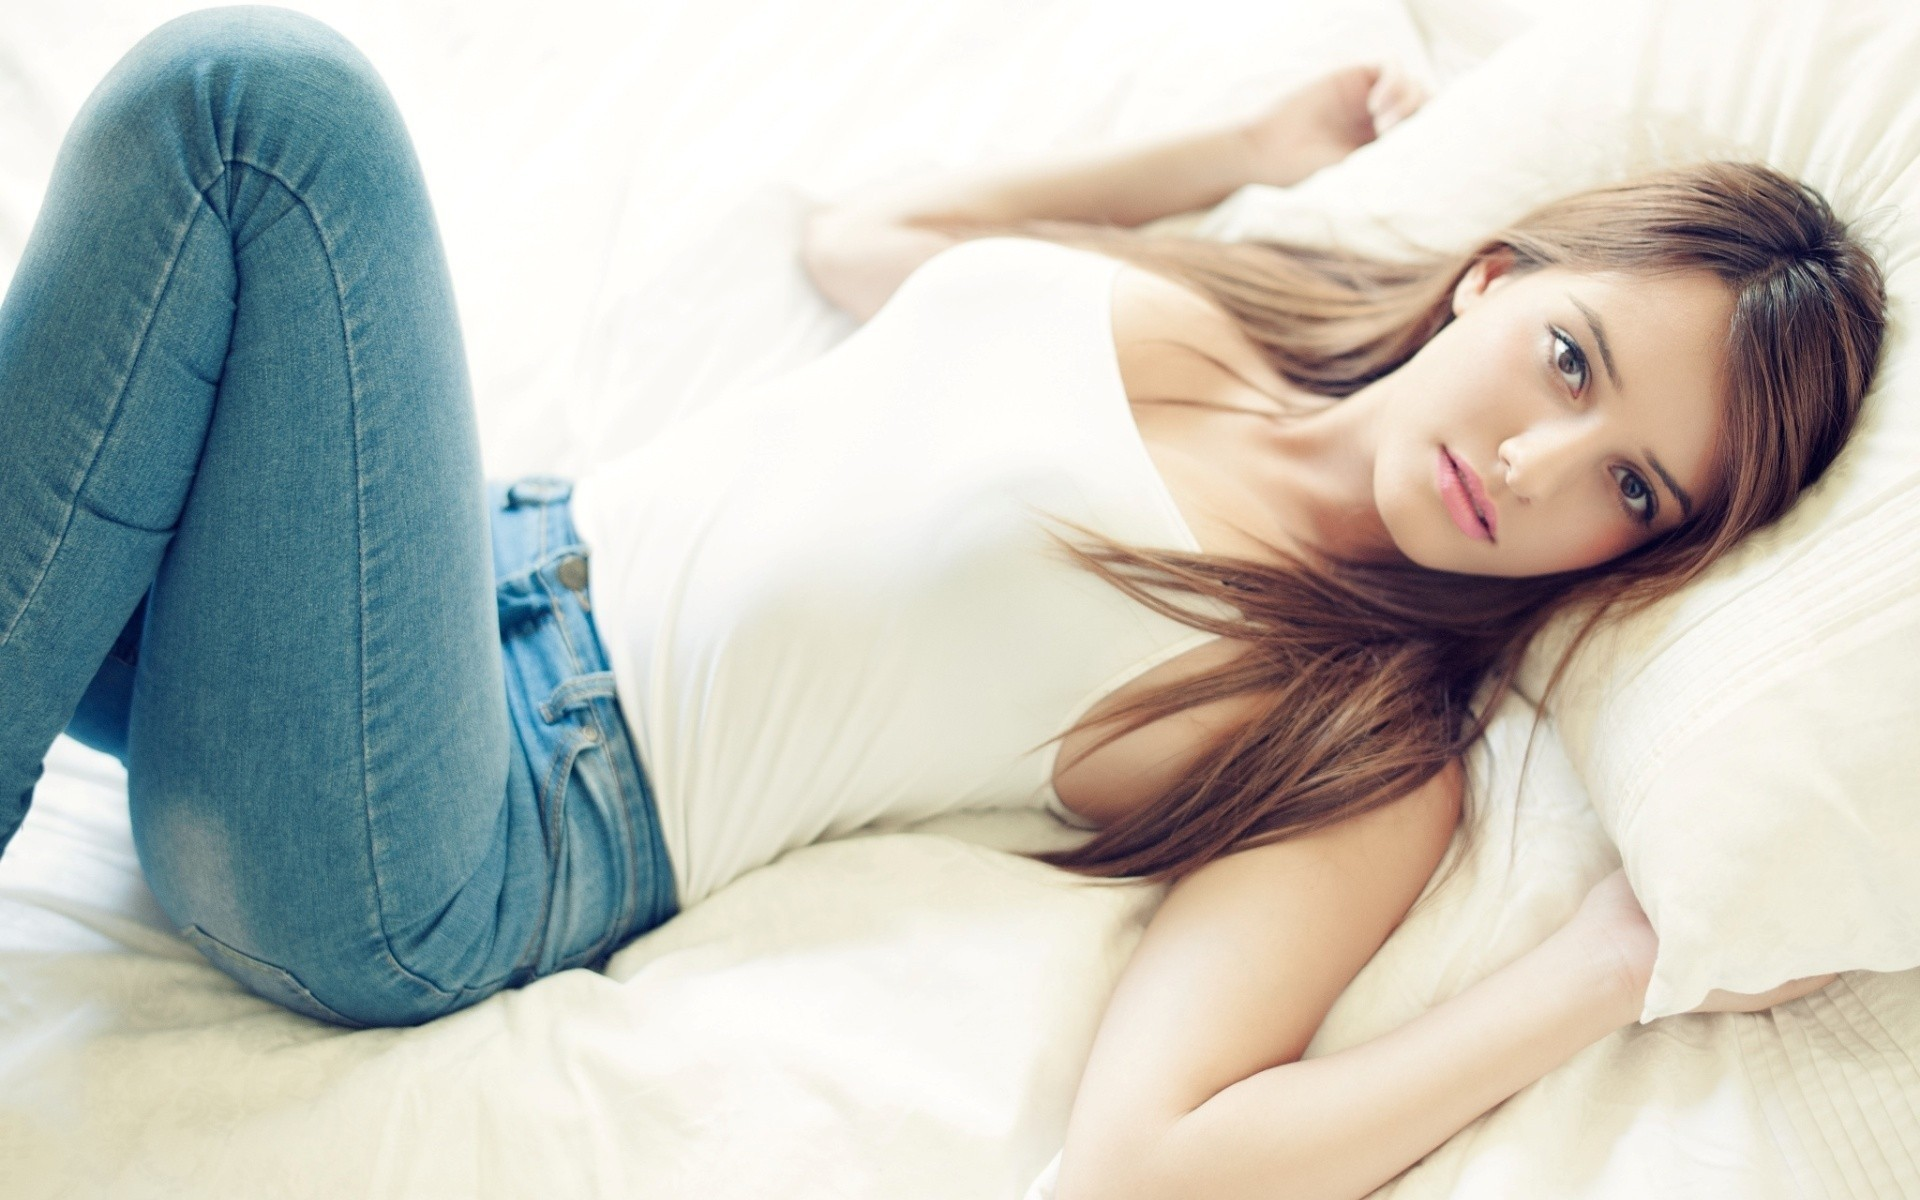 www.GetBg.net_Girls_Girl_in_jeans_and_a_white_tank_top_lying_on_pillows_in_bed_101897_